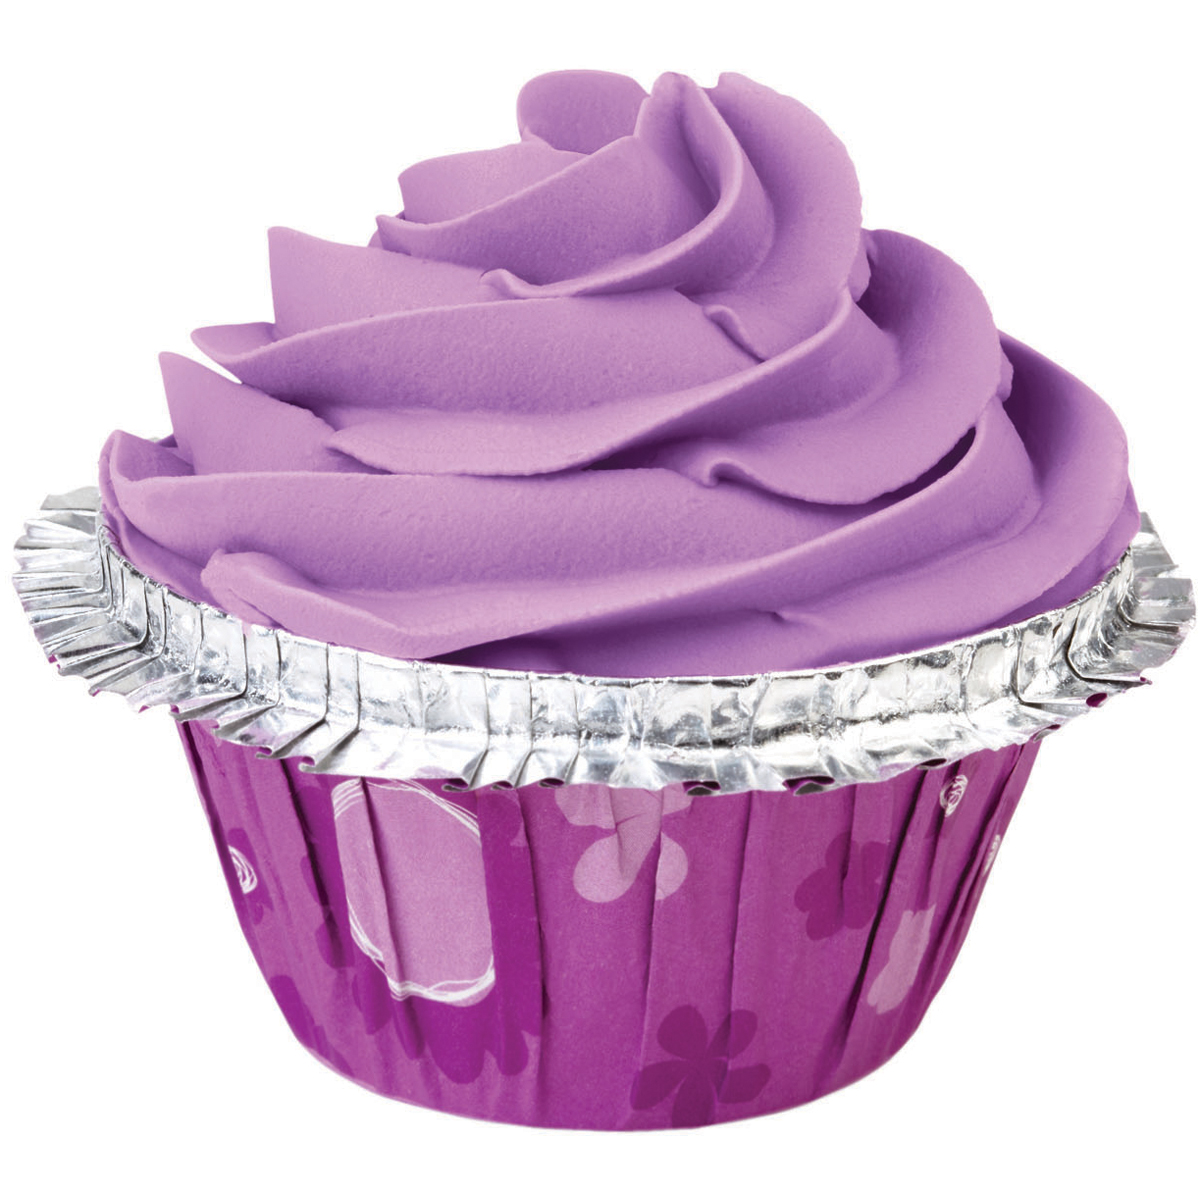 Standard Clearcup Double Ruffle Baking Cup-Purple Floral 12/Pkg